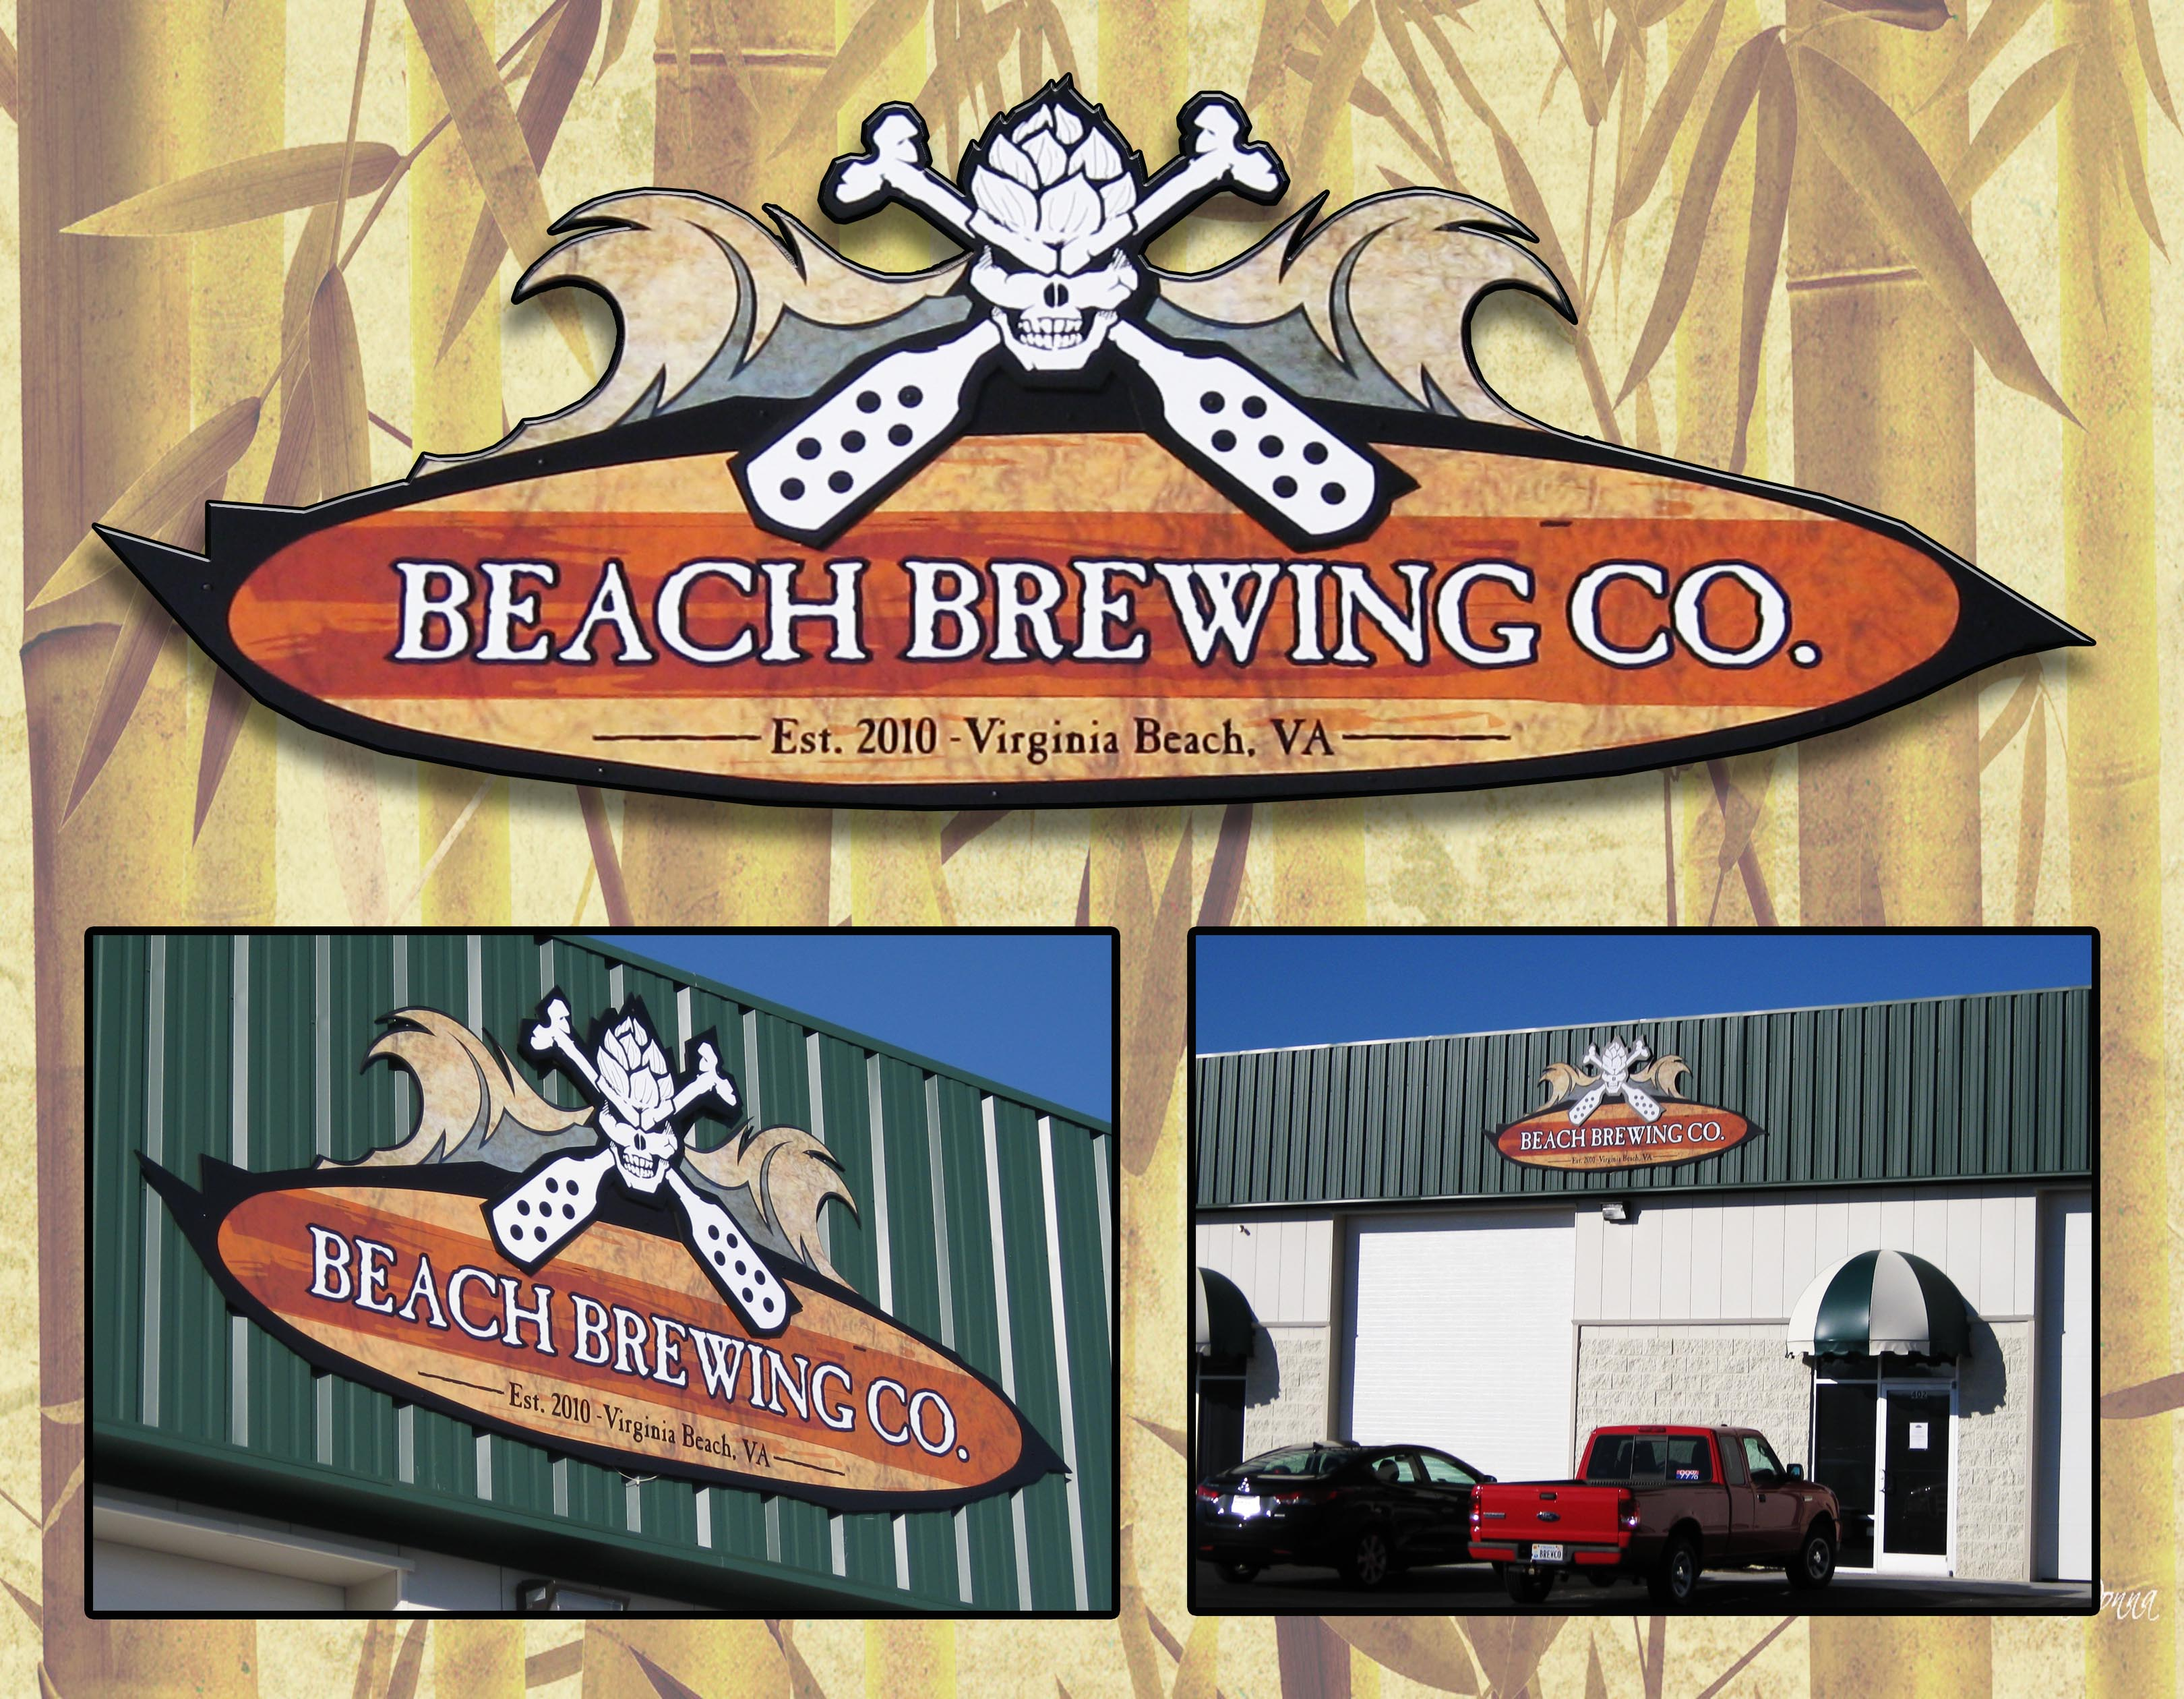 Beach Brewing Co. Signage